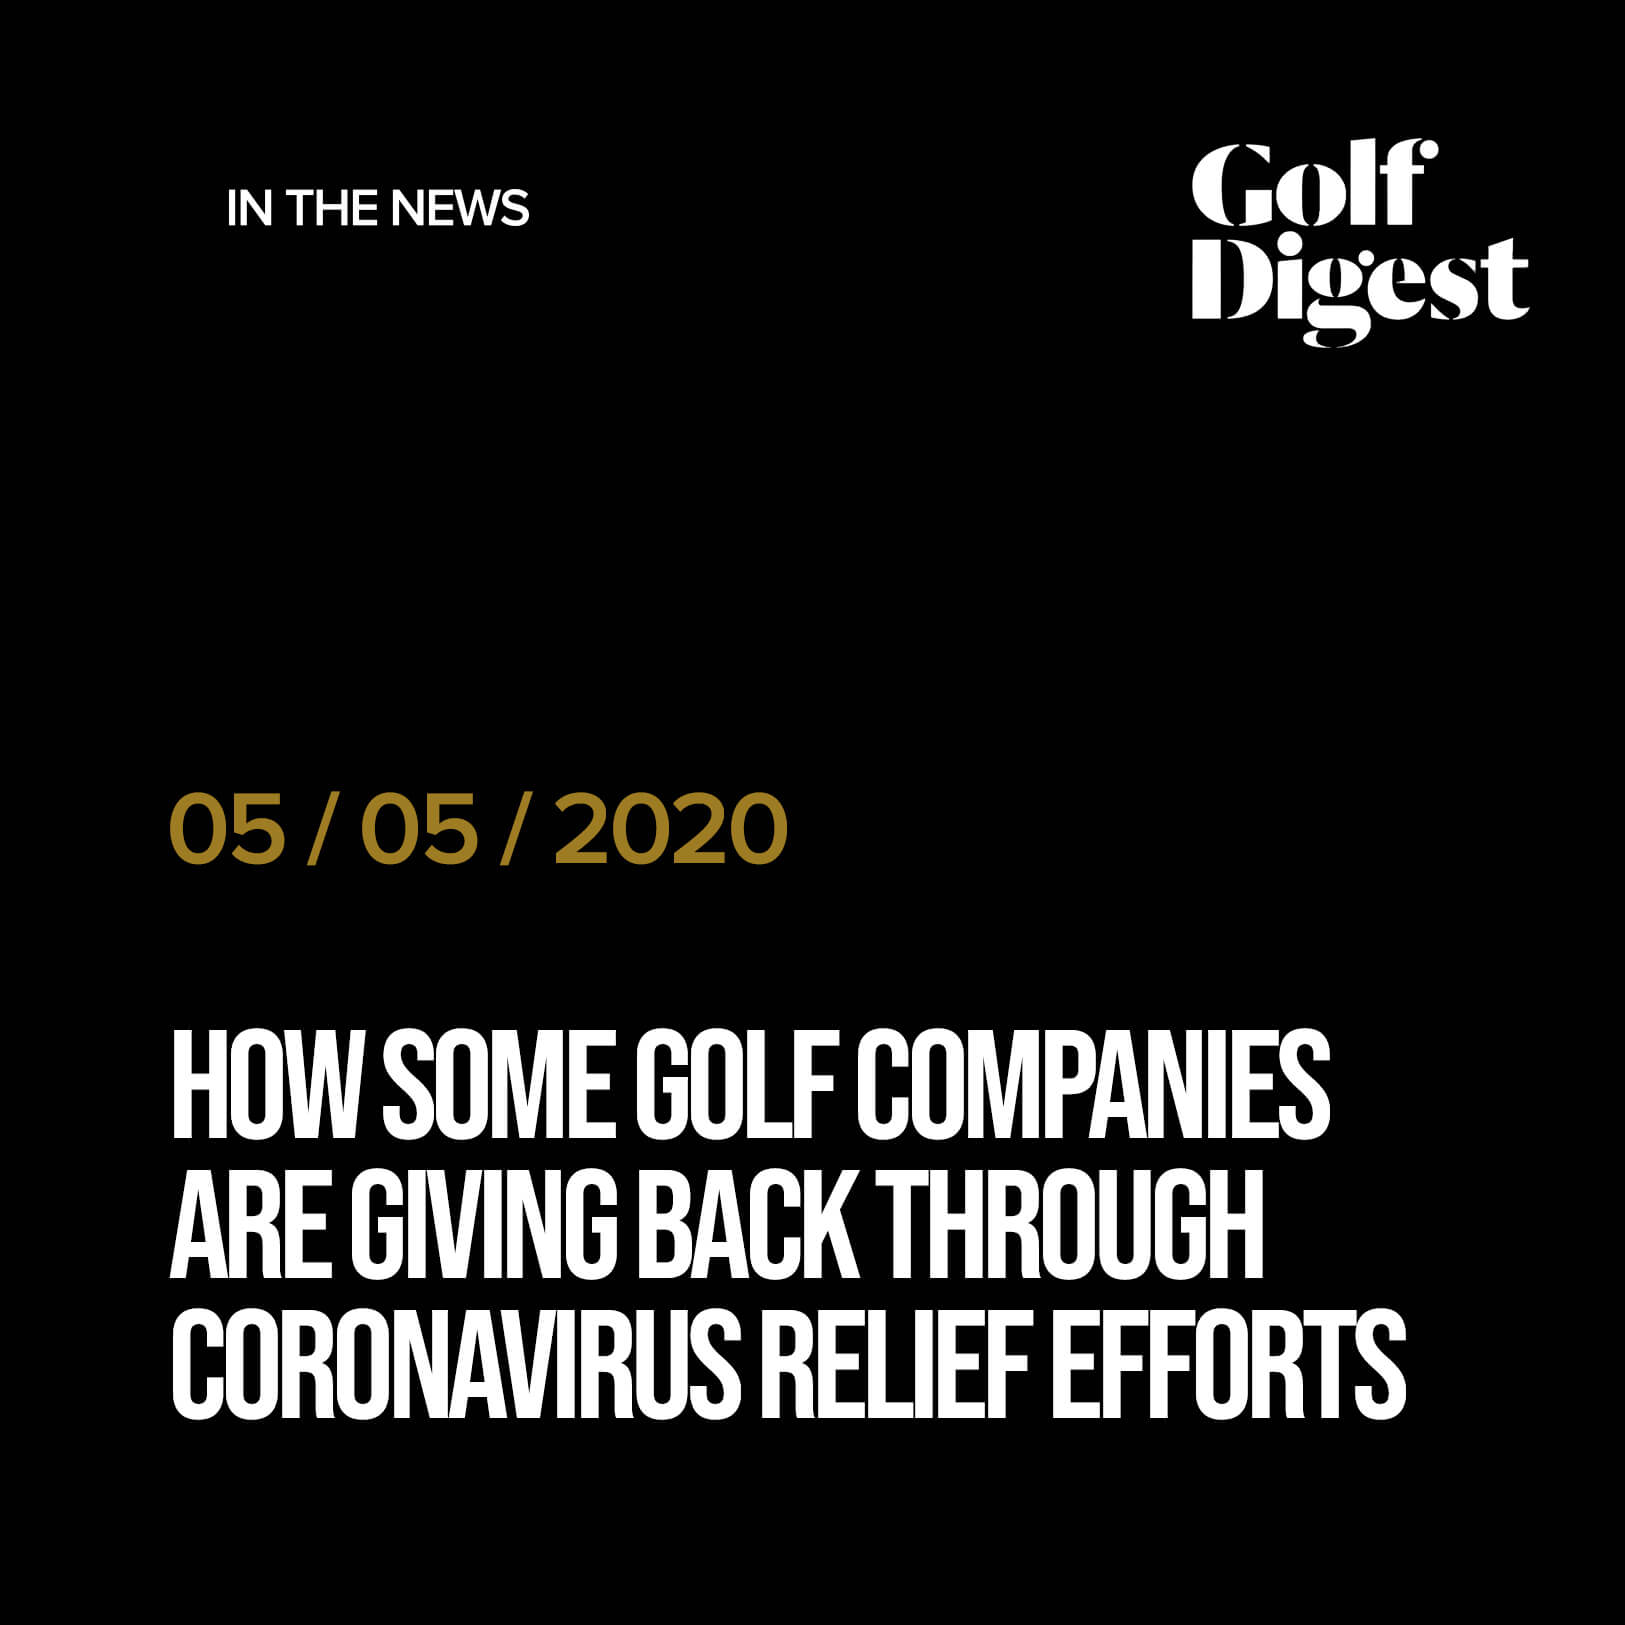 How some golf companies are giving back through coronavirus relief efforts